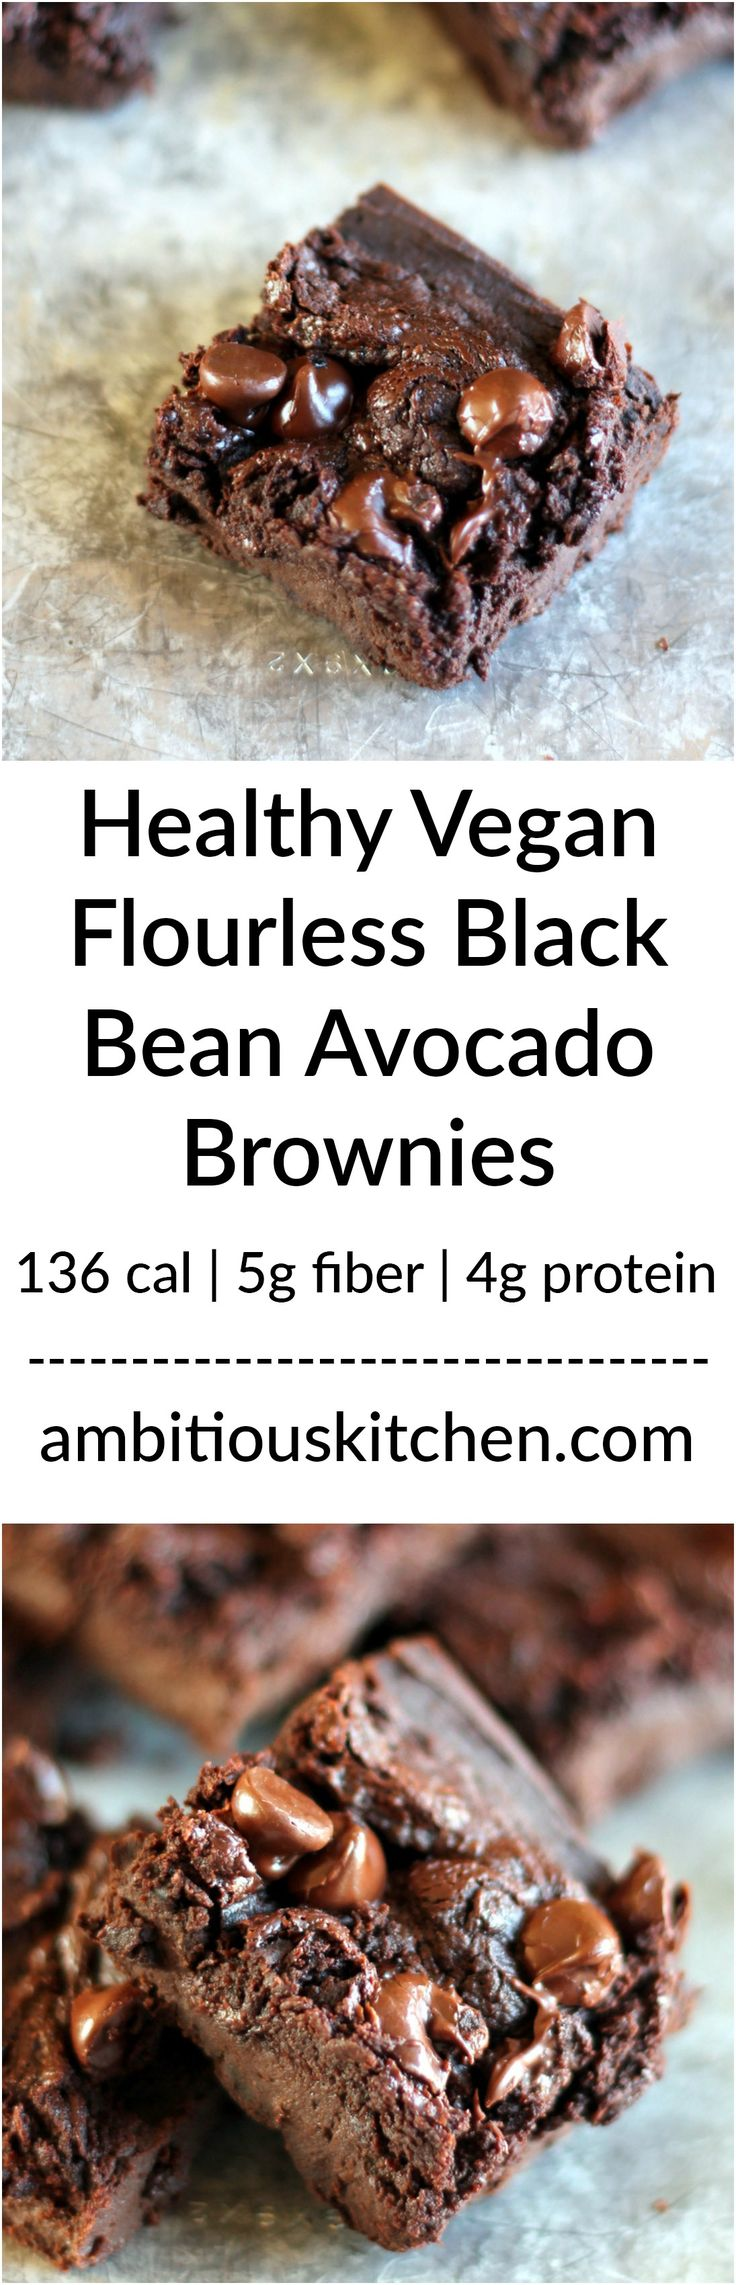 Delicious fudgy and healthy brownies made with black beans and avocados. Sounds weird, tastes awesome! Gluten free and vegan.